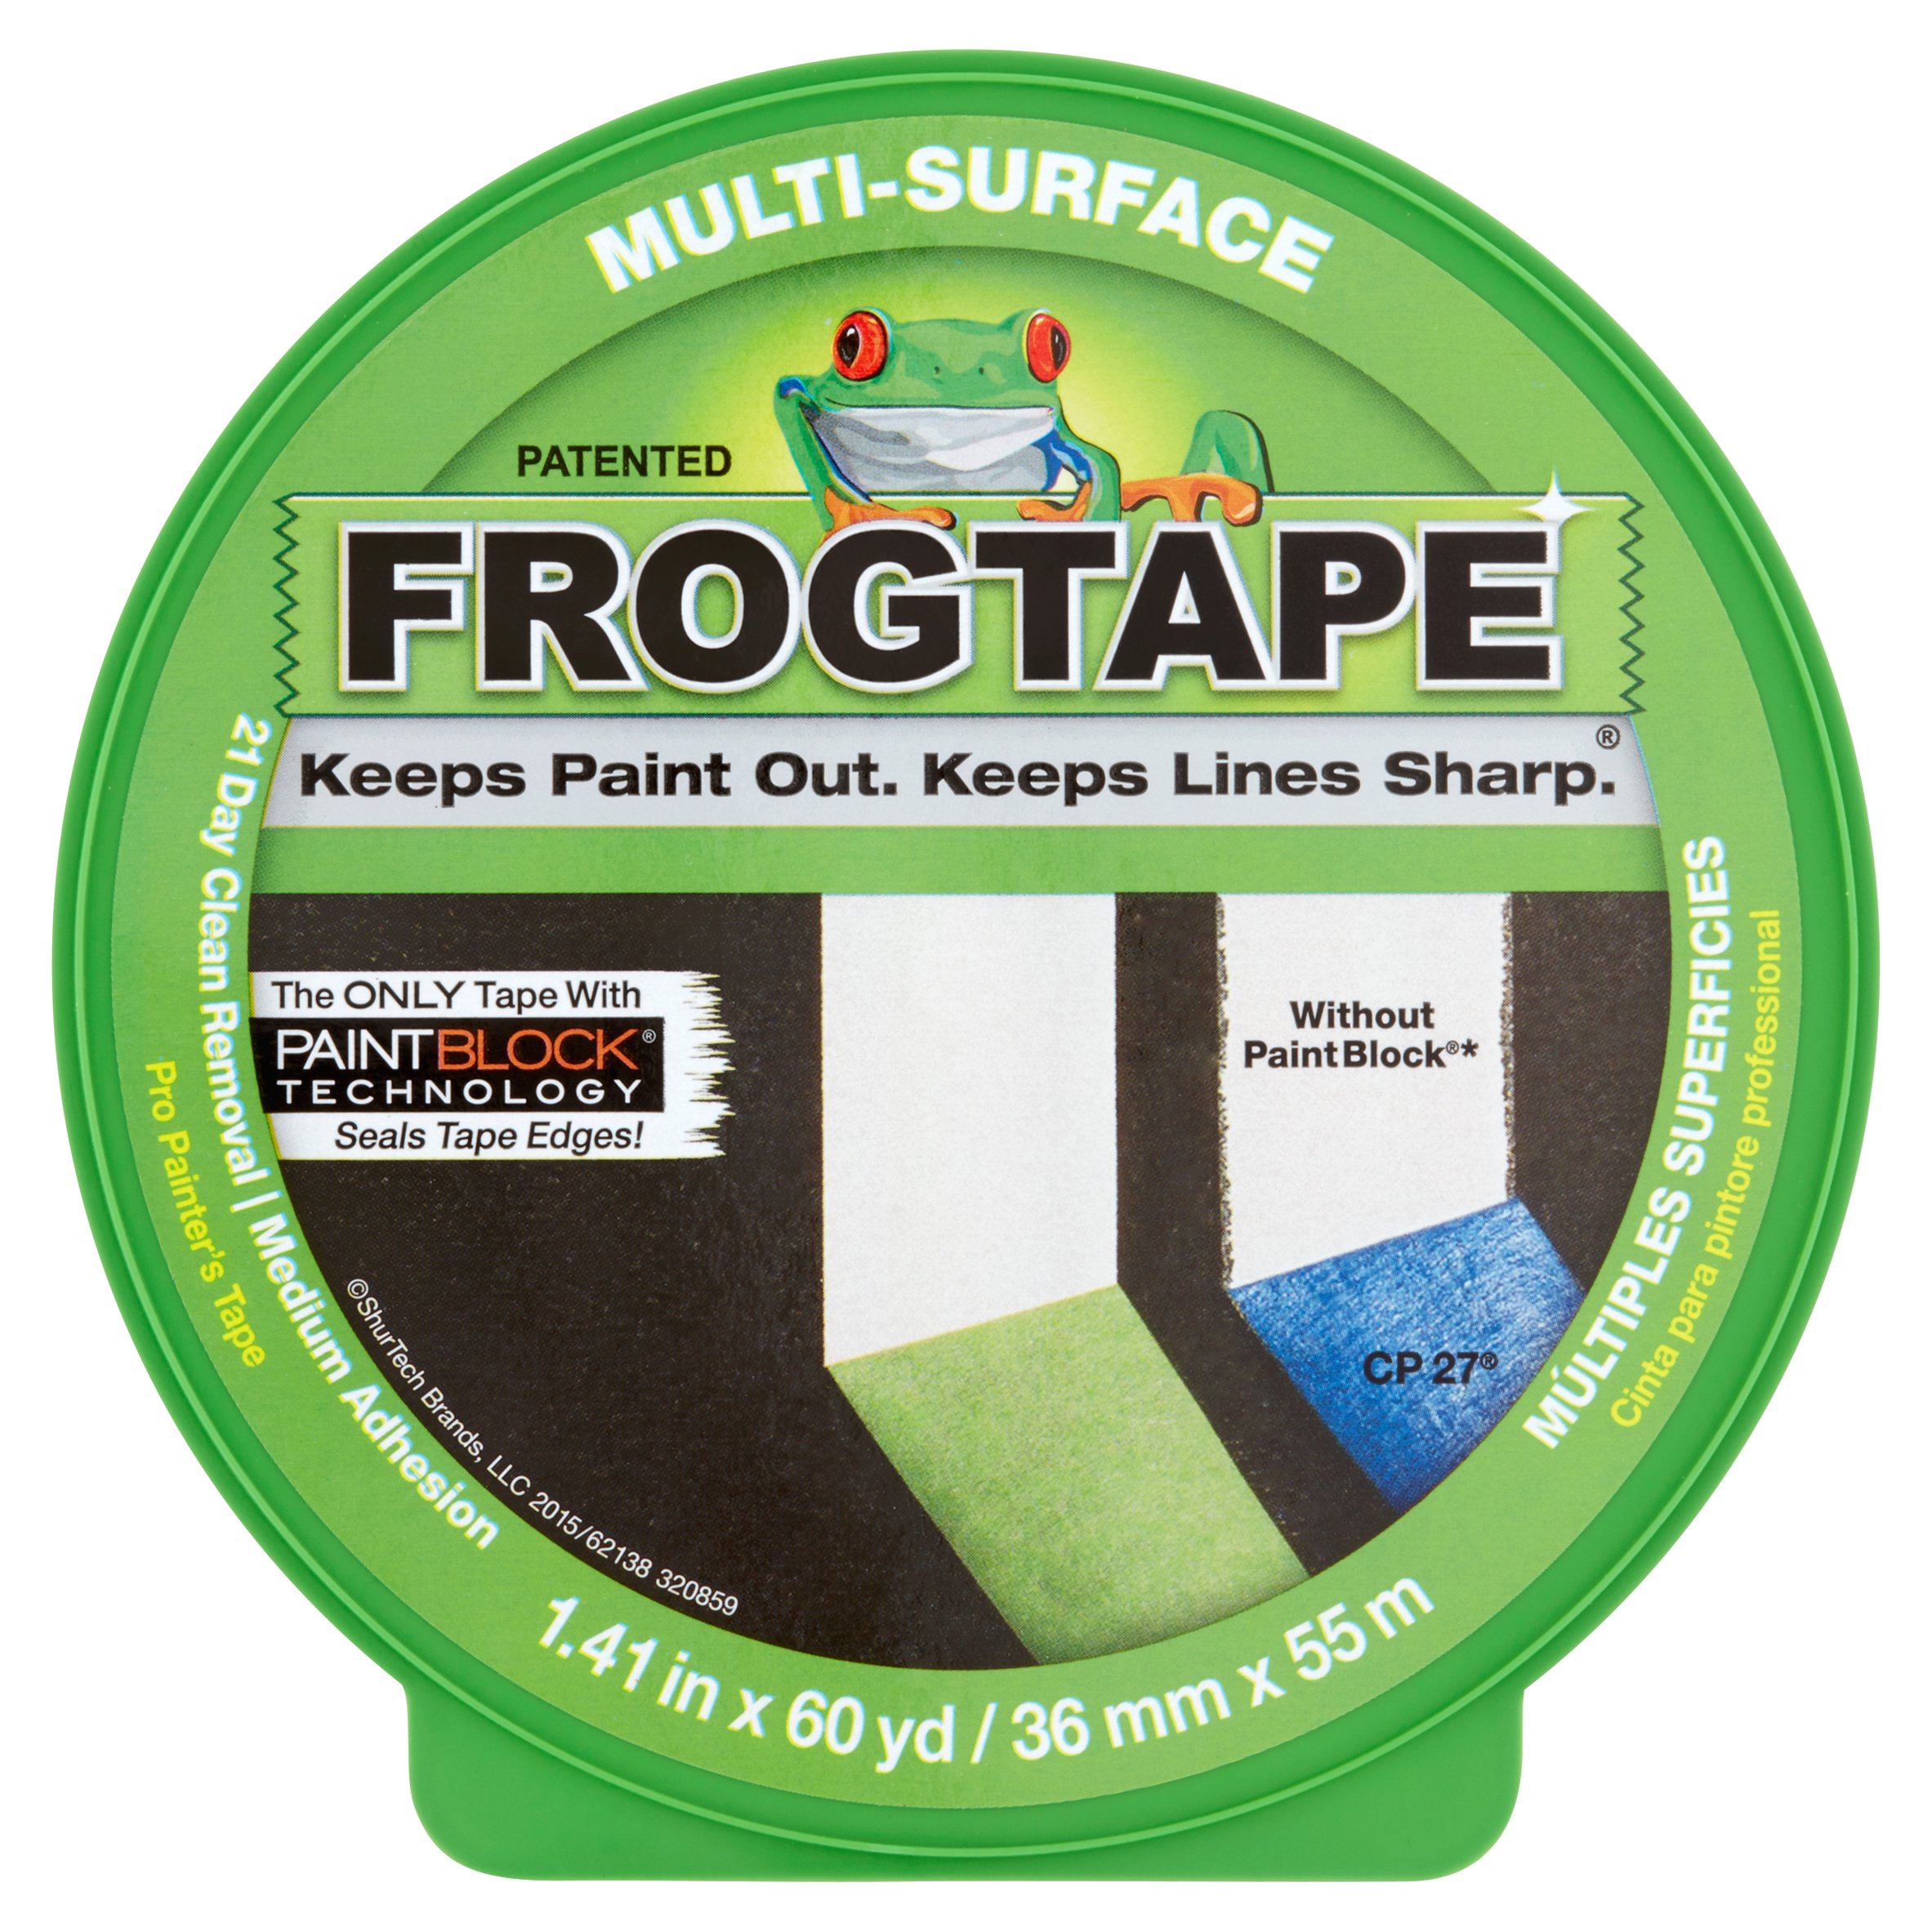 frog tape painting tape, 1.41 in. x 60 yds.